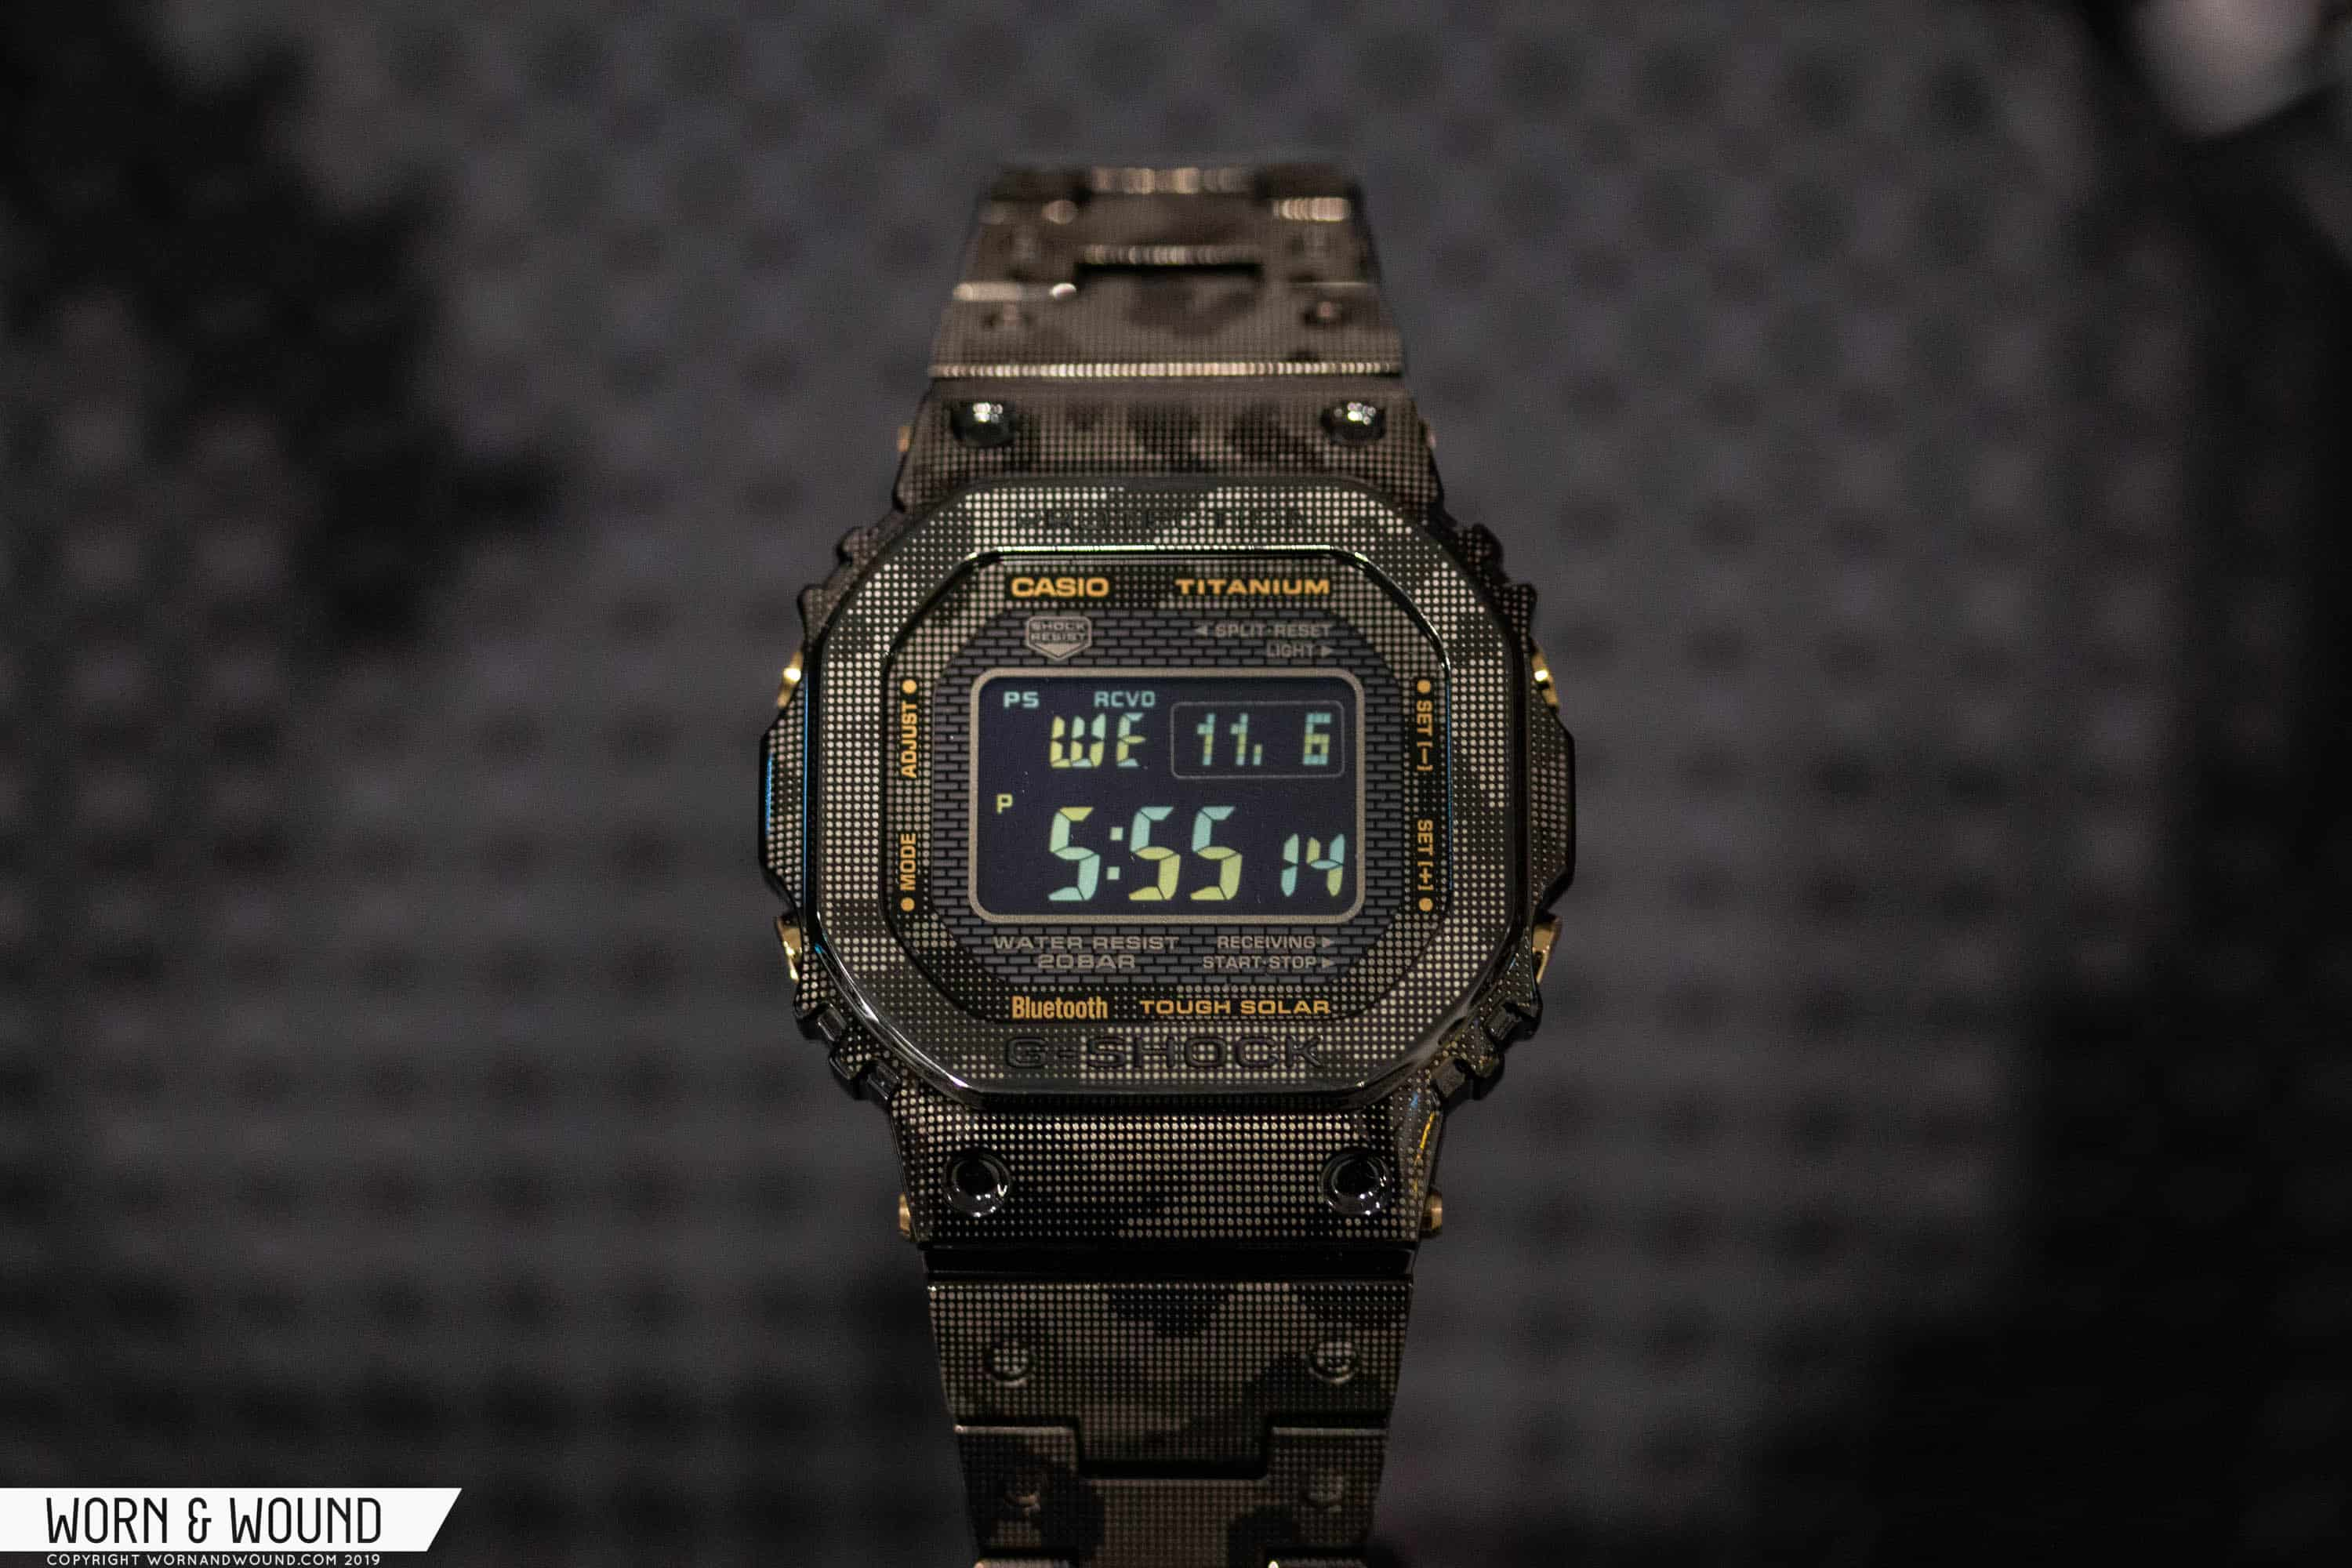 Casio G Shock GMWB5000TCM 1 1 - First Look at Two Limited Edition G-shocks in a Unique Laser...